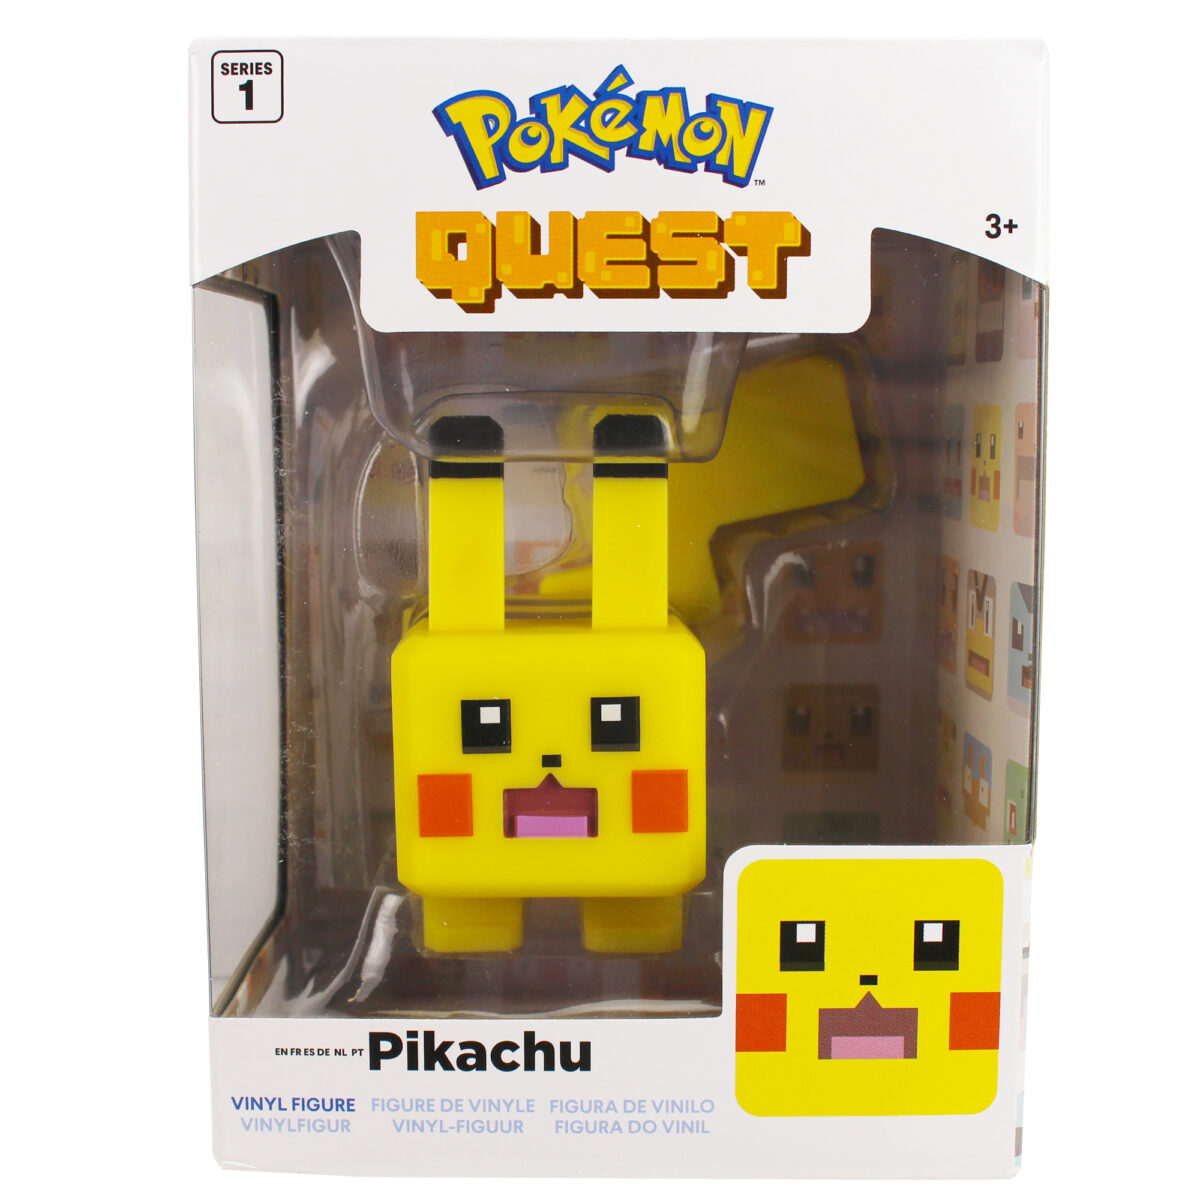 Picture of blocky Pikachu